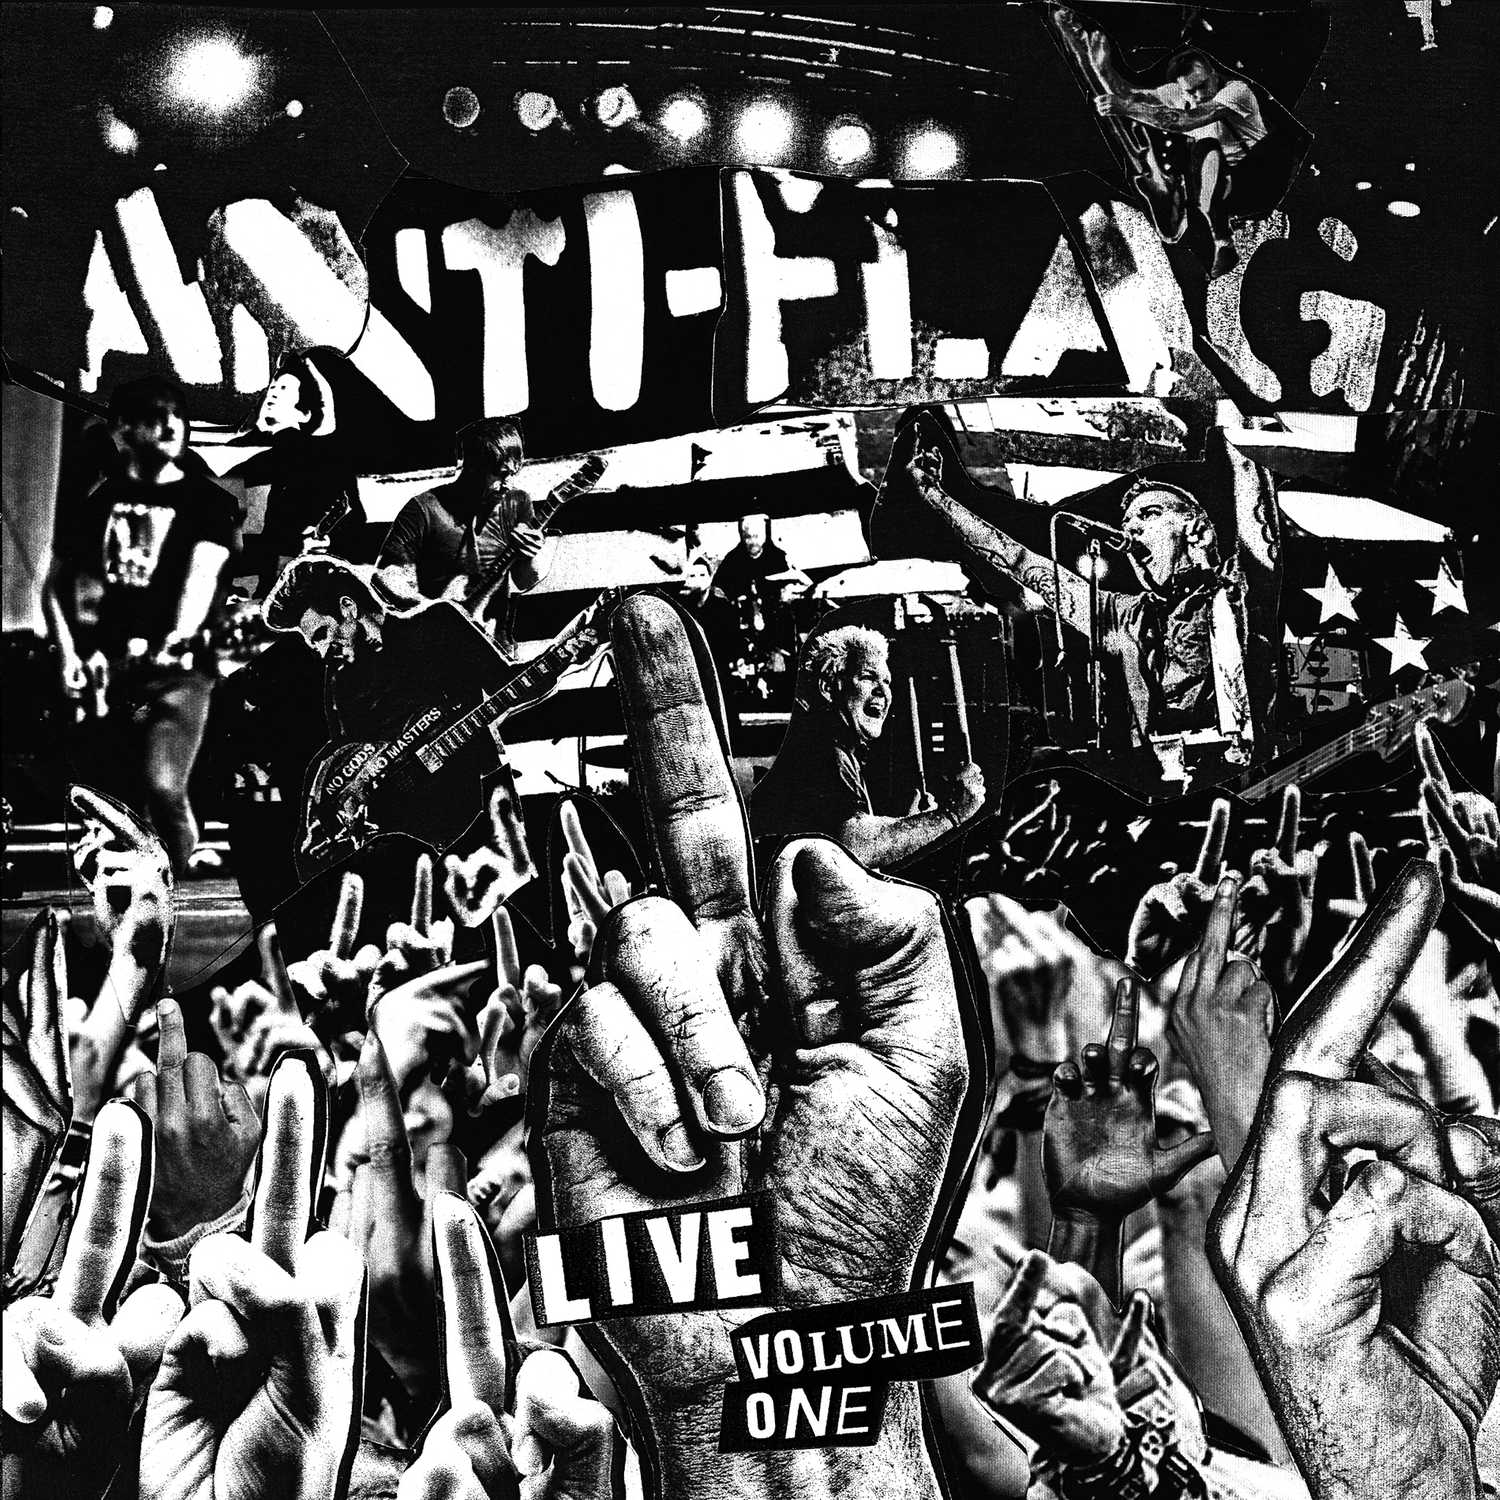 Live Volume 1 - Anti-Flag